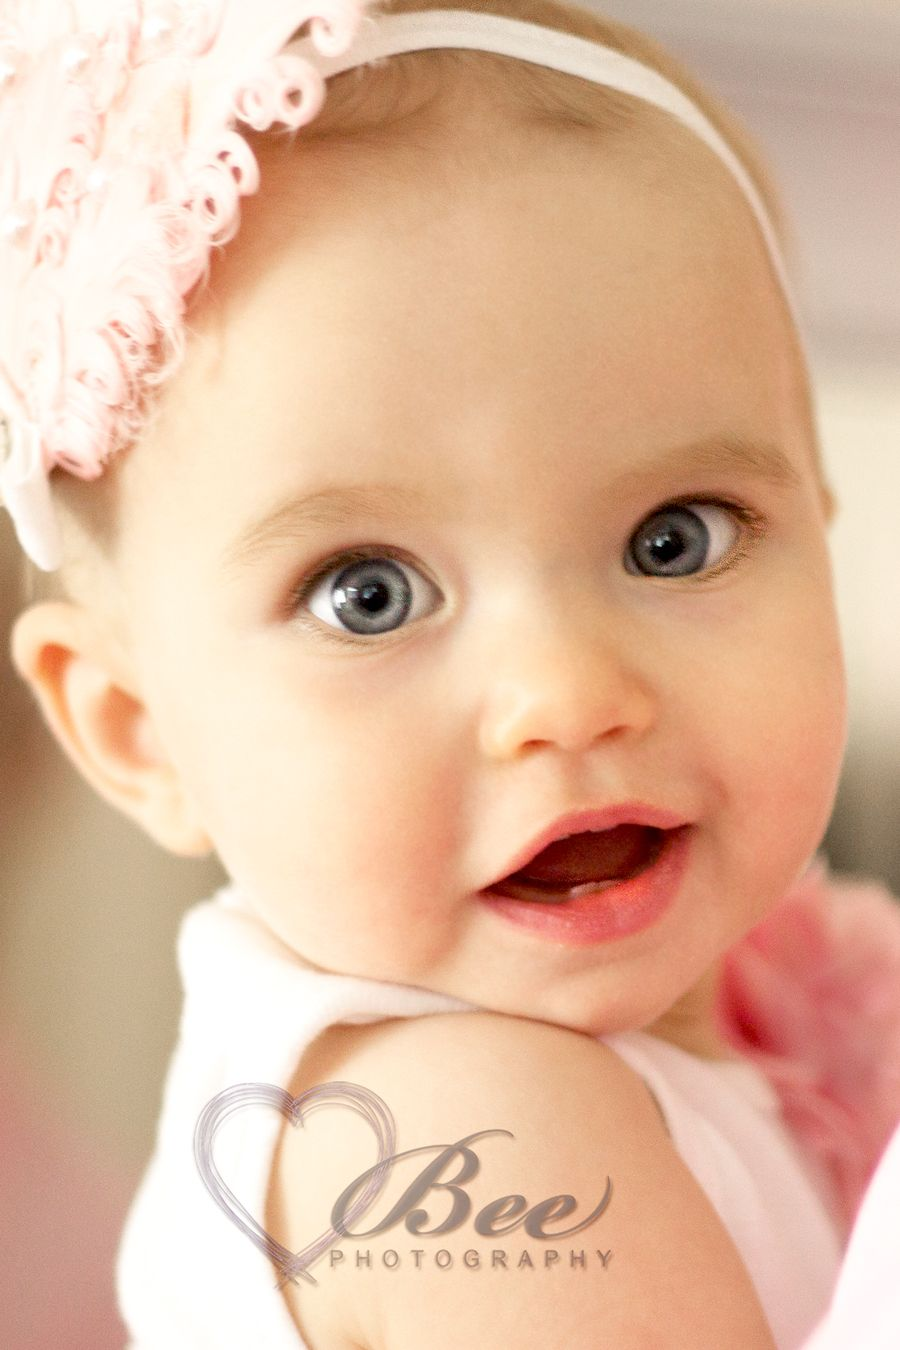 blonde hair blue eyed baby - Google Search | Adorable ...